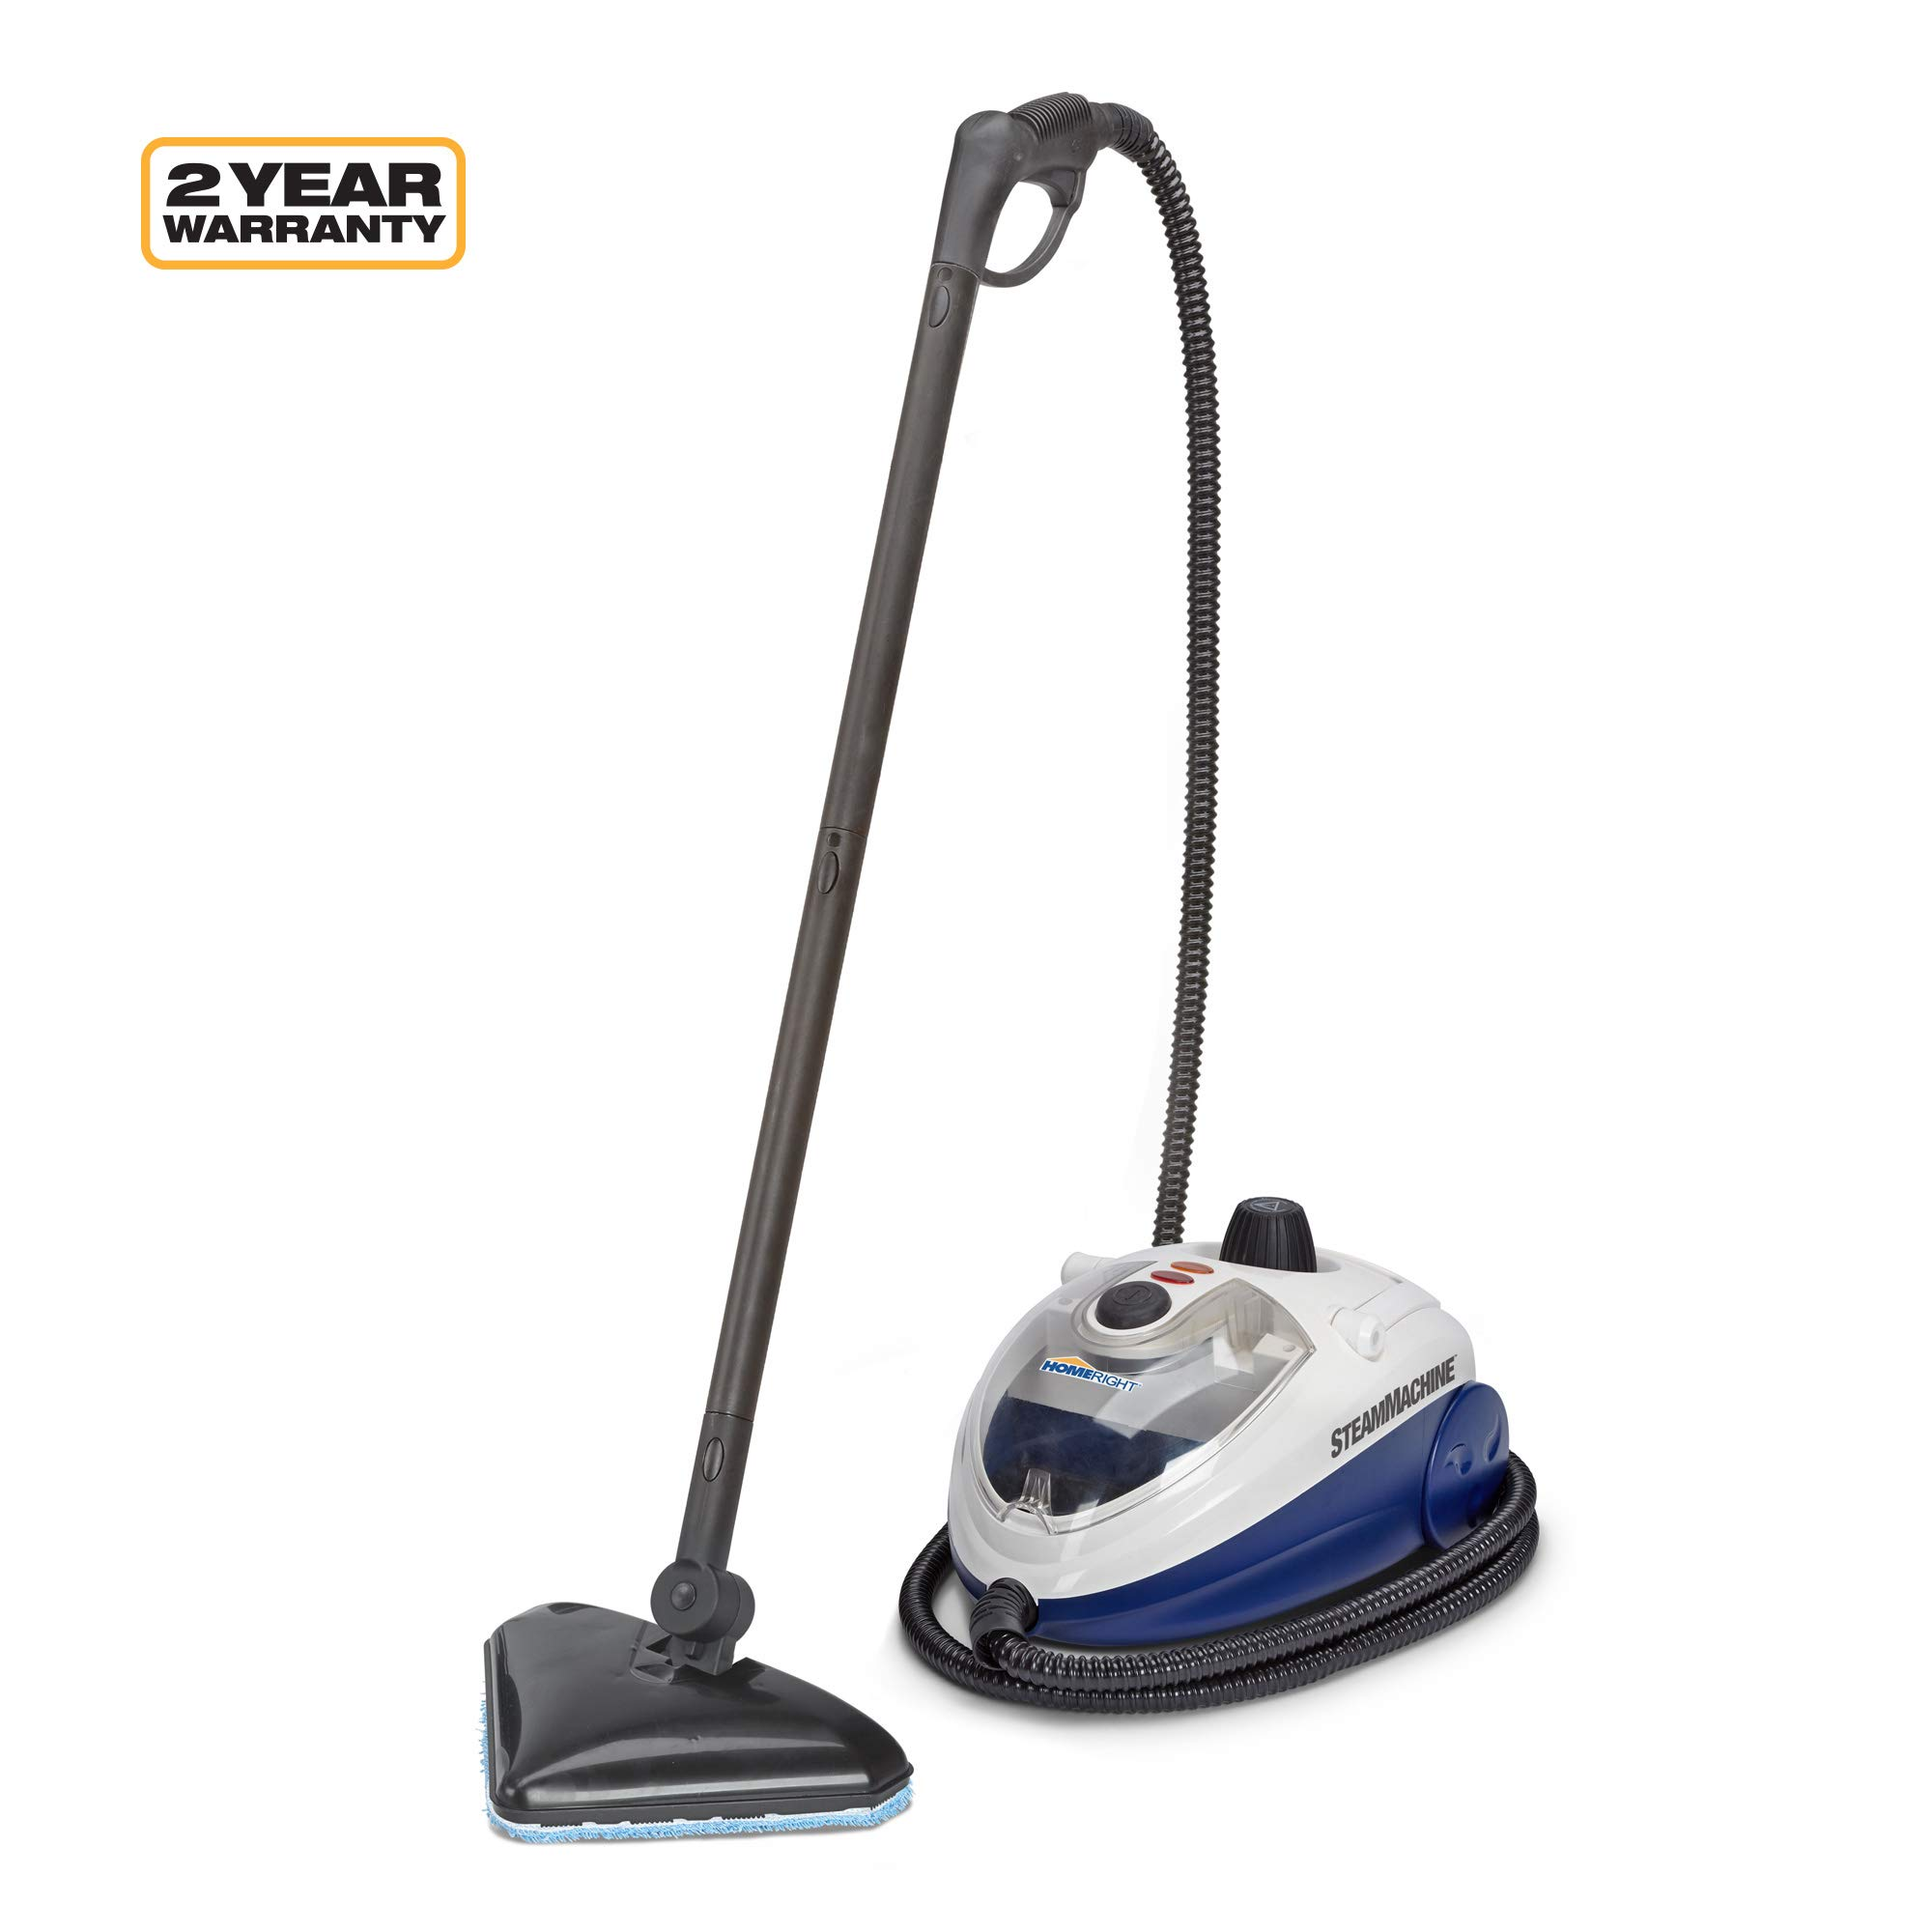 Wagner Spraytech C900134.M StamMachine Elite Steam Cleaner, Chemical Free Cleaner with 20 Attachments